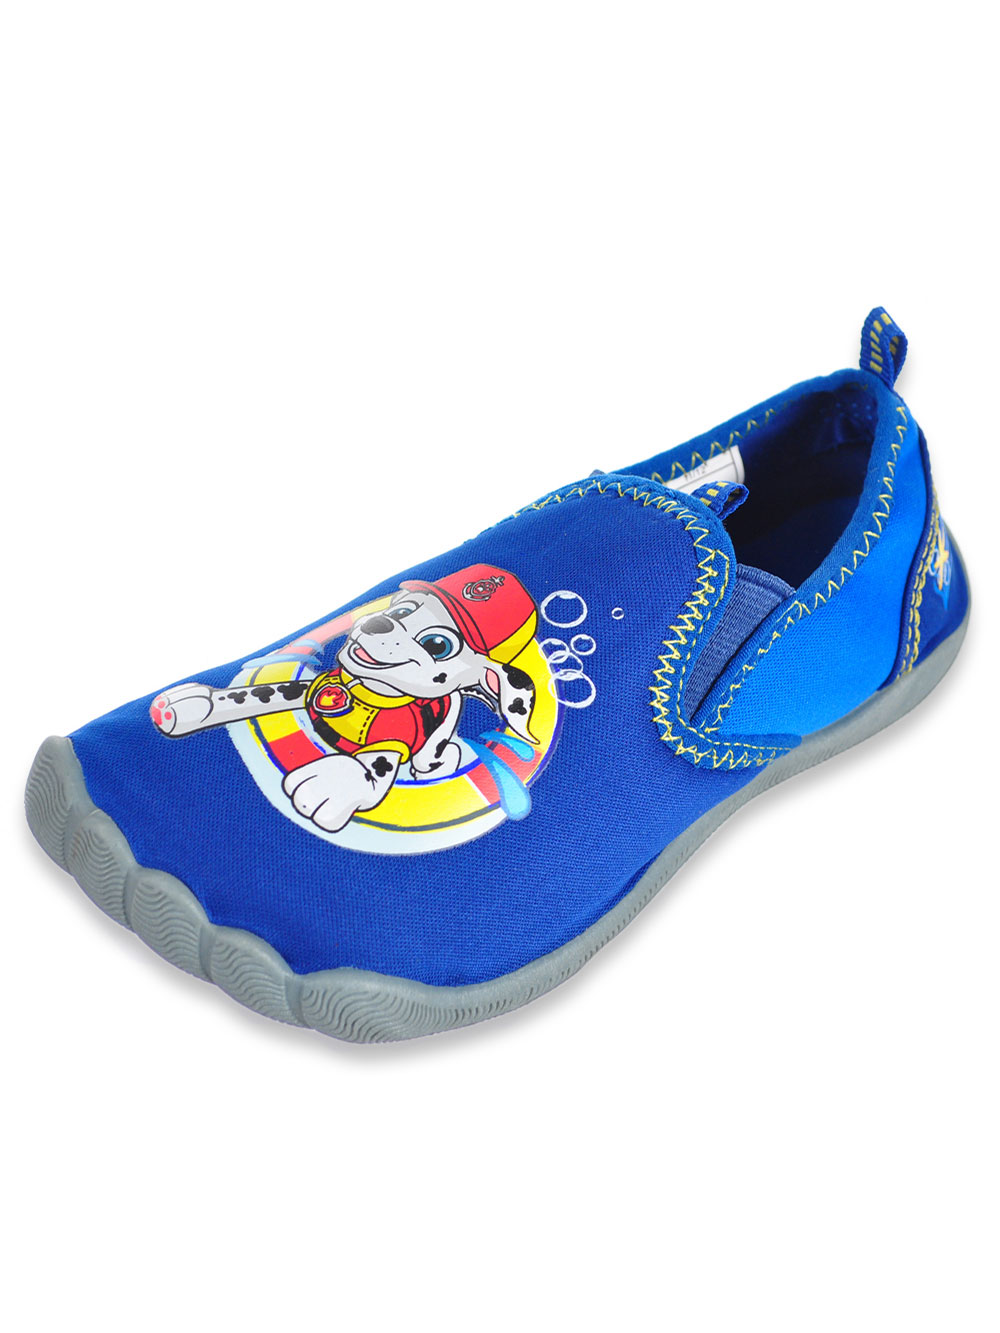 Paw Patrol Boys' Water Shoes (Sizes 5 – 12) - CookiesKids.com